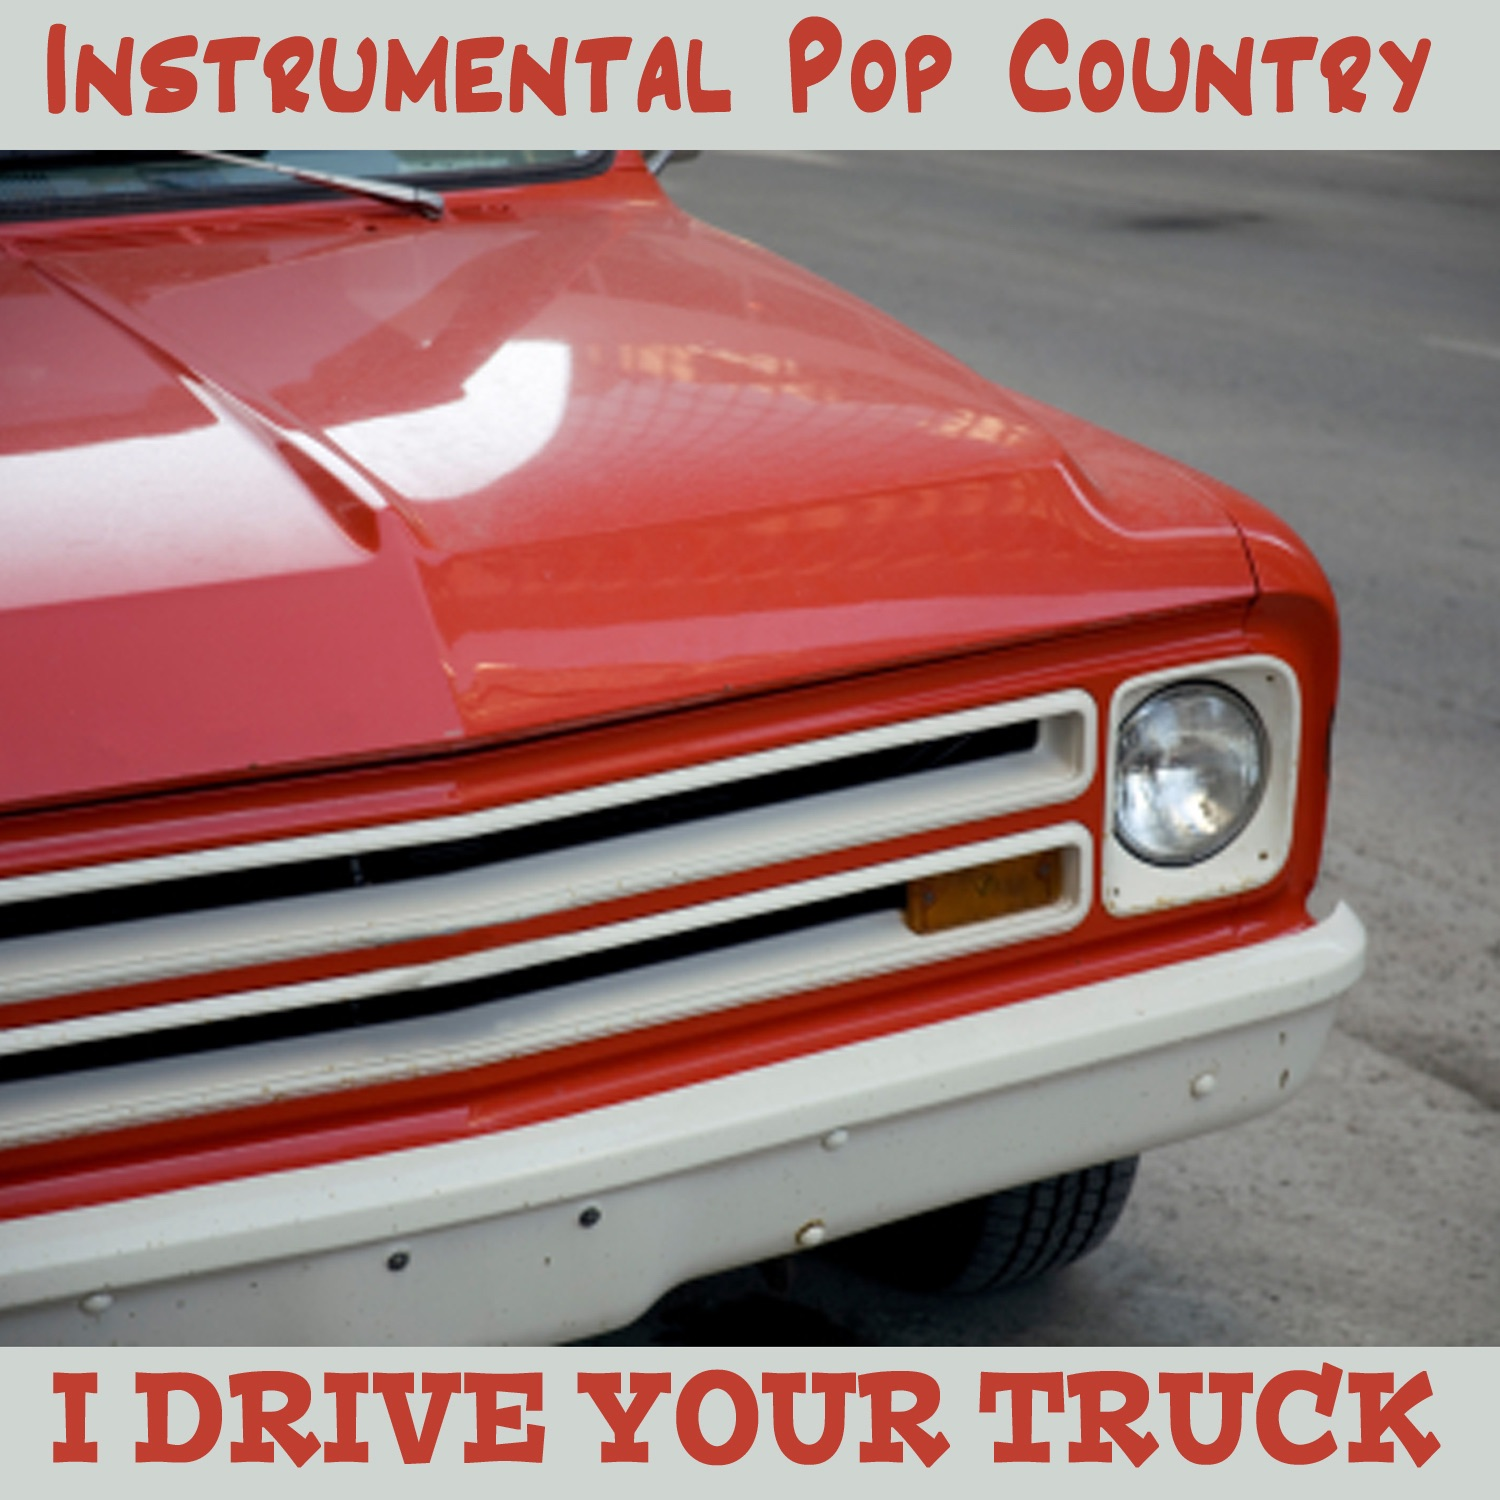 Instrumental Pop Country: I Drive Your Truck